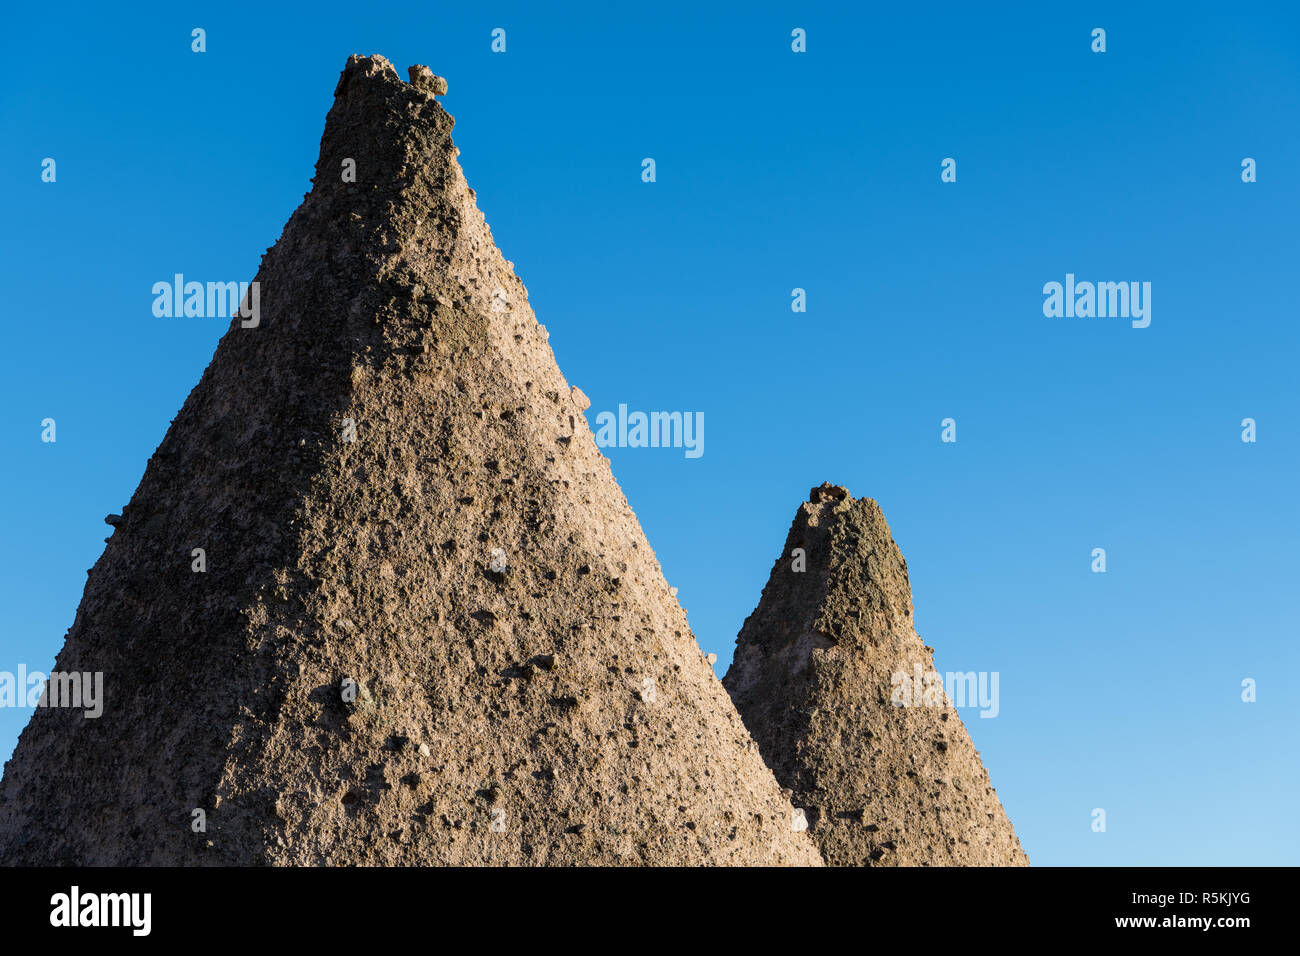 The sharp peaks of two roughly textured rock formations against a perfect blue sky at Kasha-Katuwe Tent Rocks National Monument, New Mexico - Stock Image